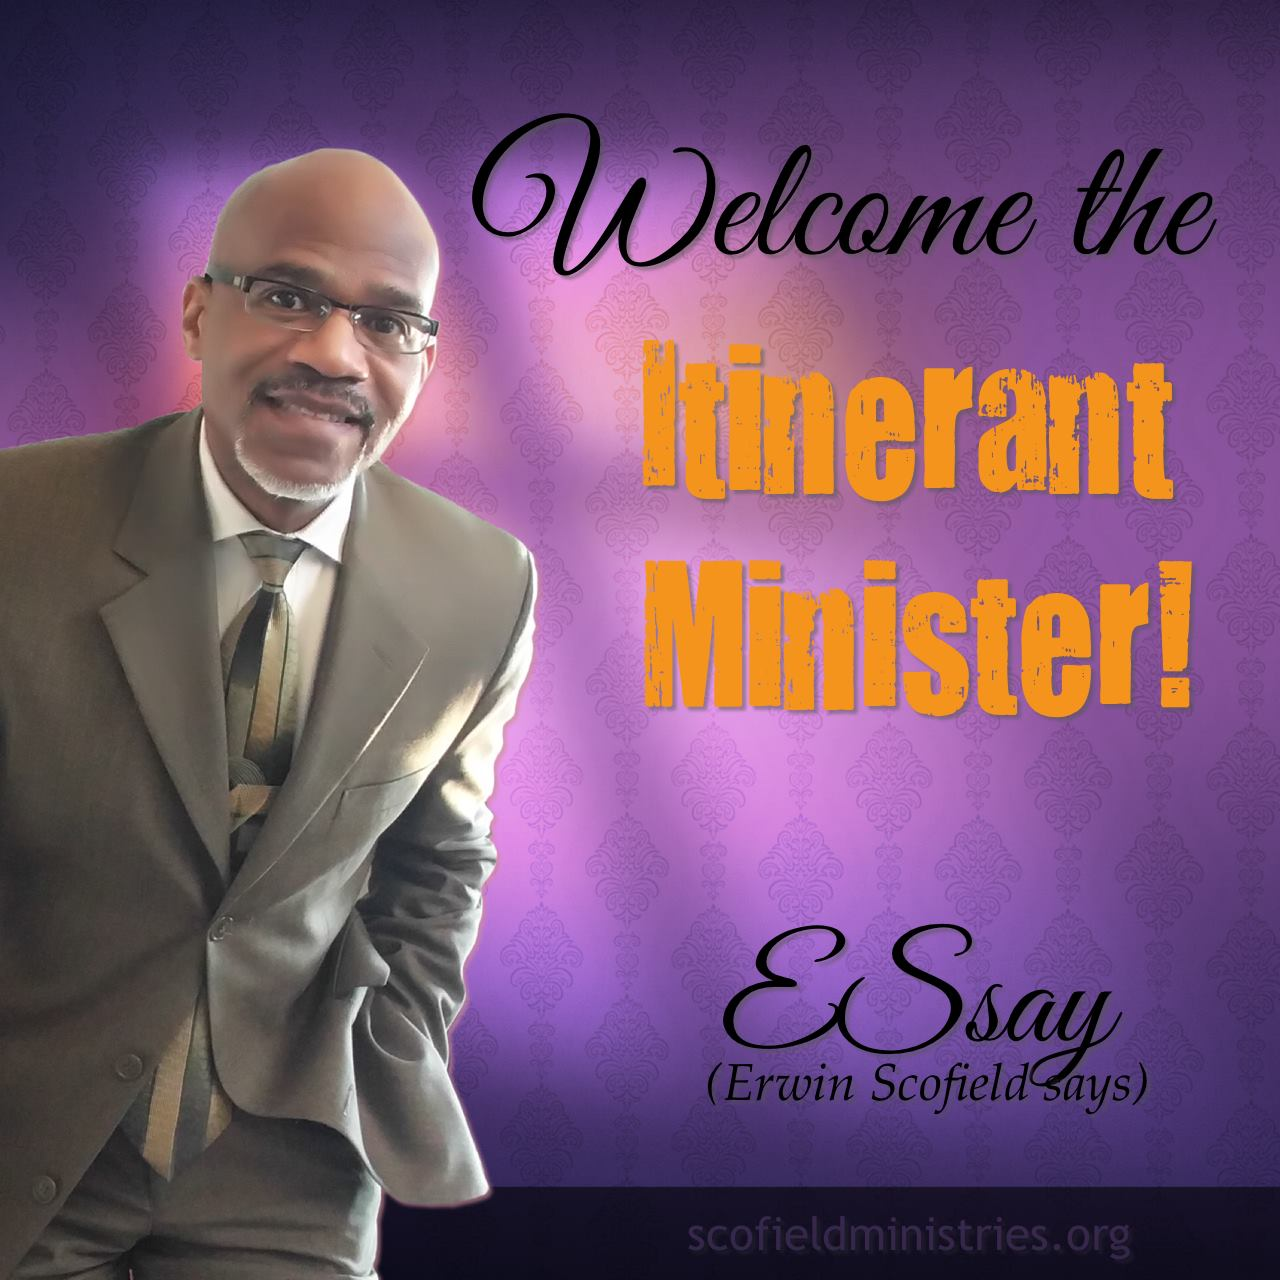 Cover Image for Itinerant Minister blog post